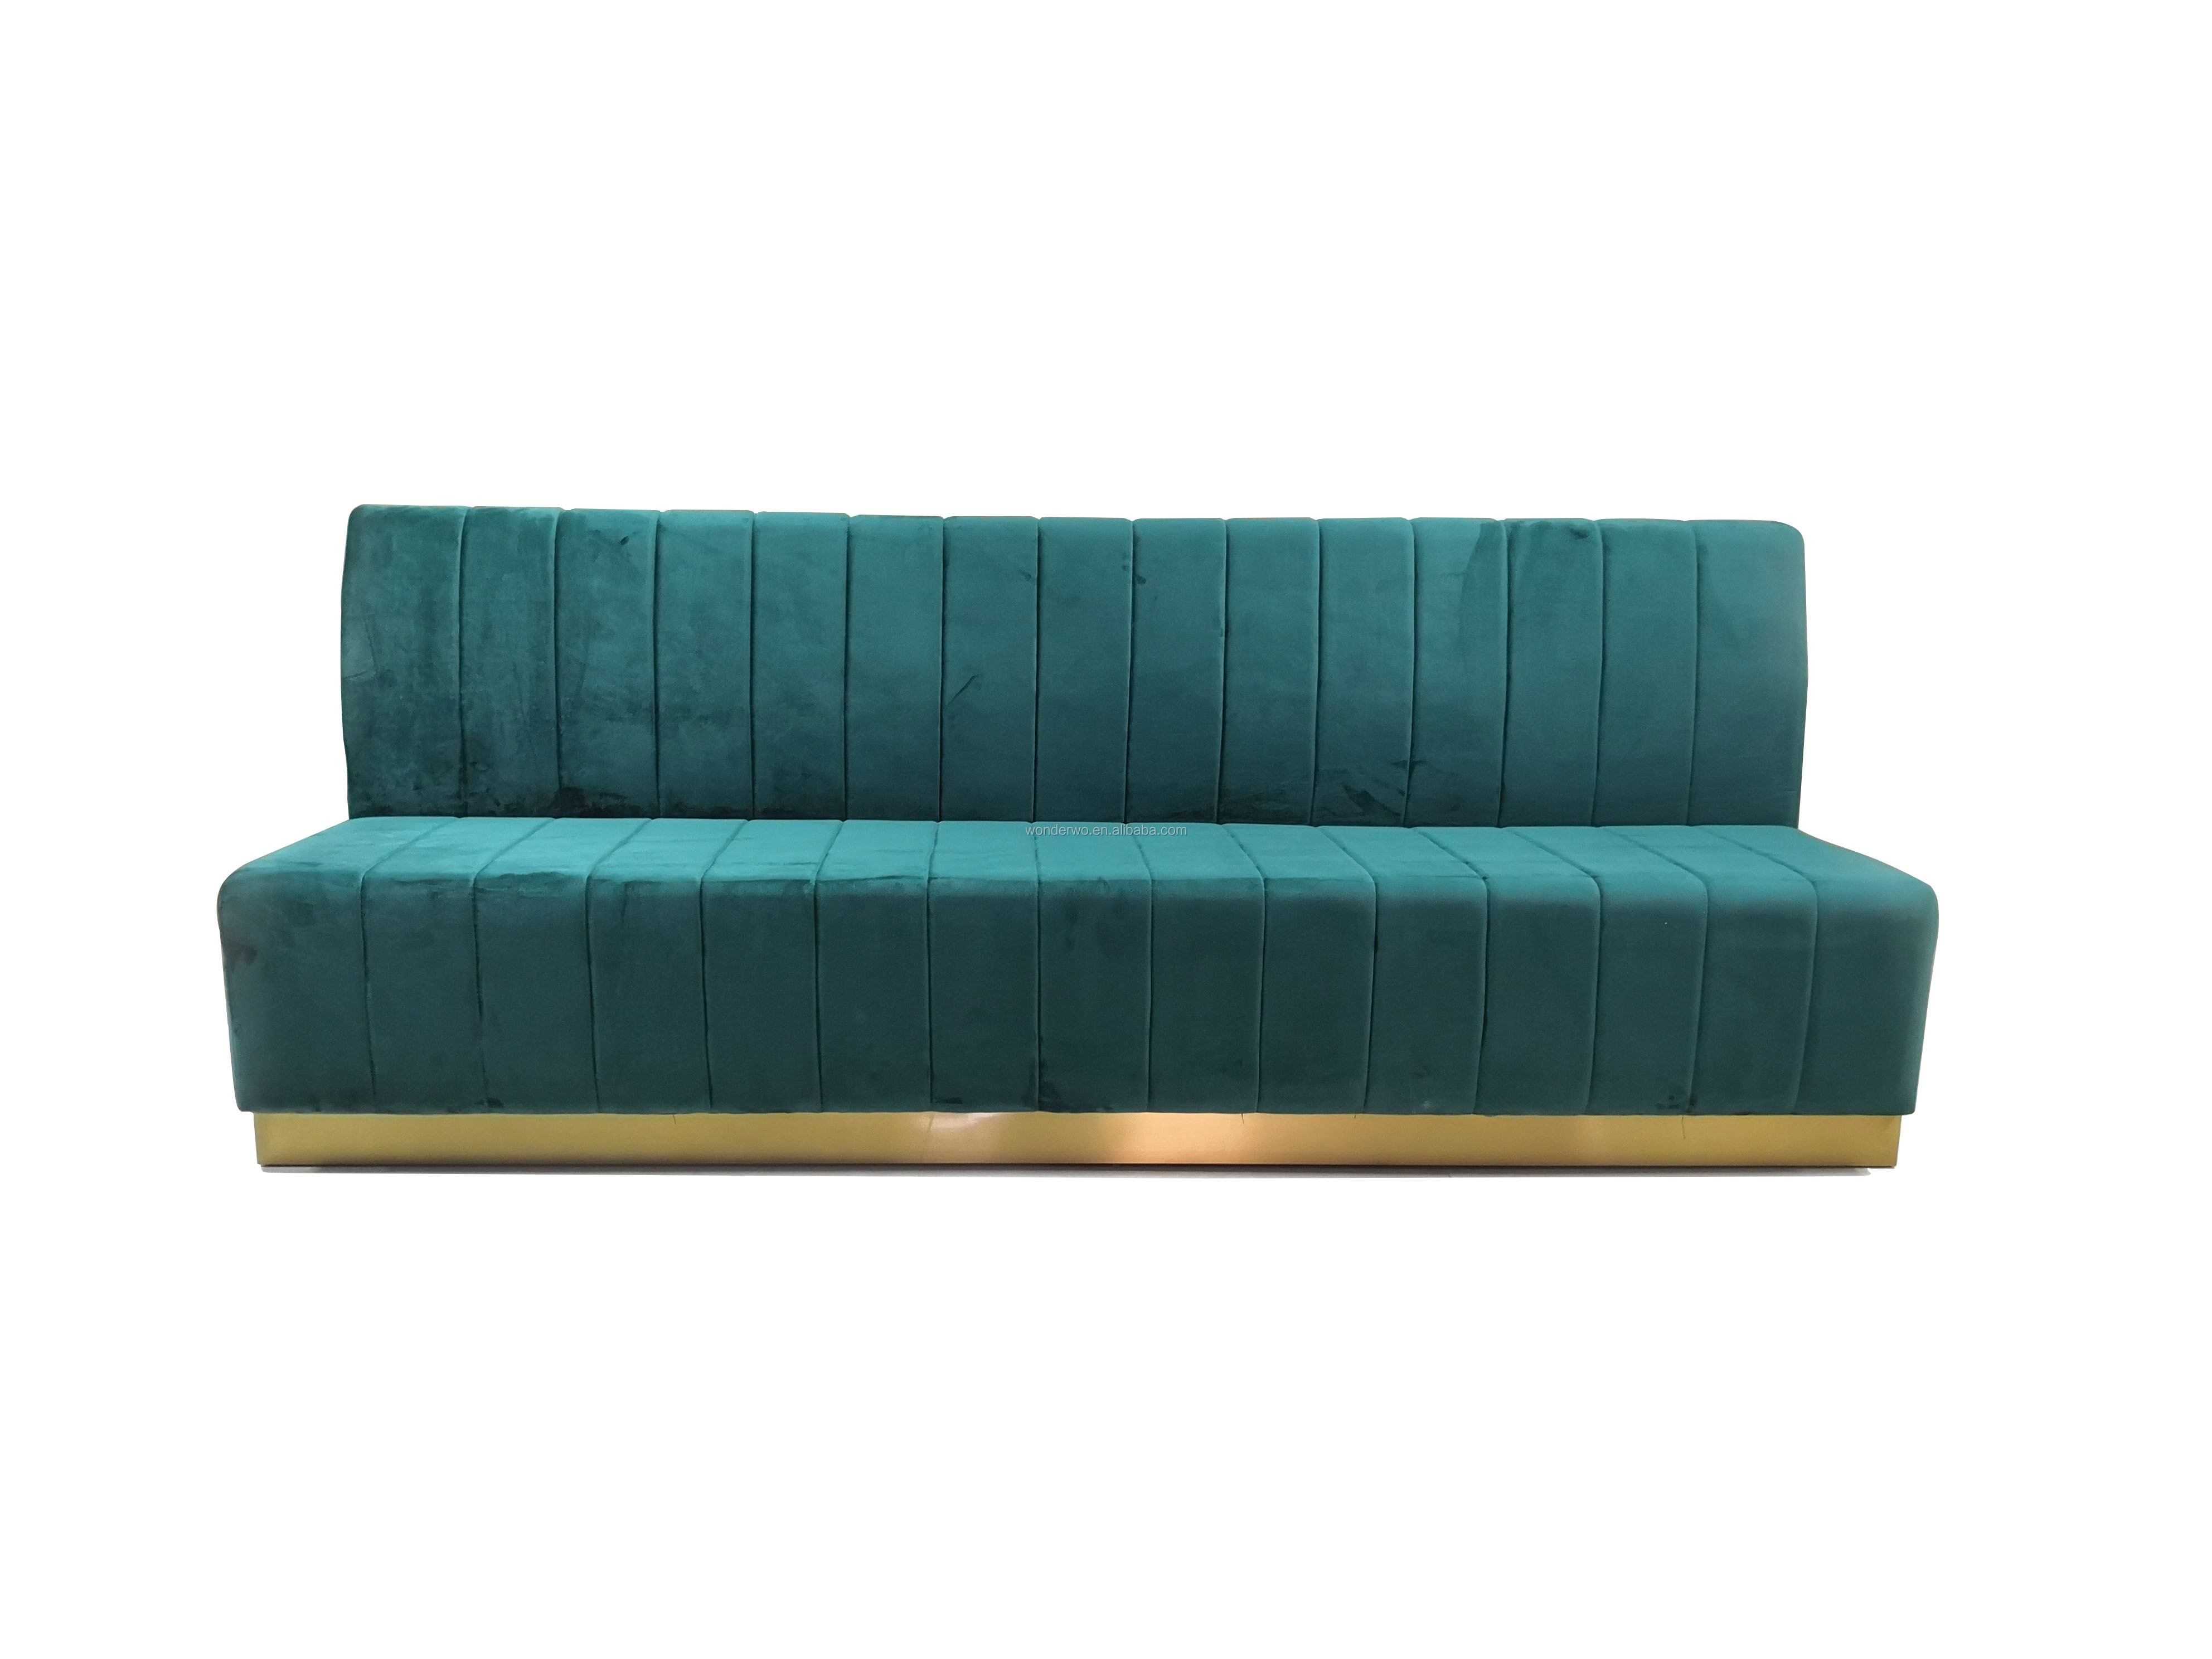 Green Velvet Restaurant Sofa Booth Seating Custom Make Long Wall Bench Gold Base Furniture View W Product Details From Guangzhou Wonderwo Limited On Alibaba Com